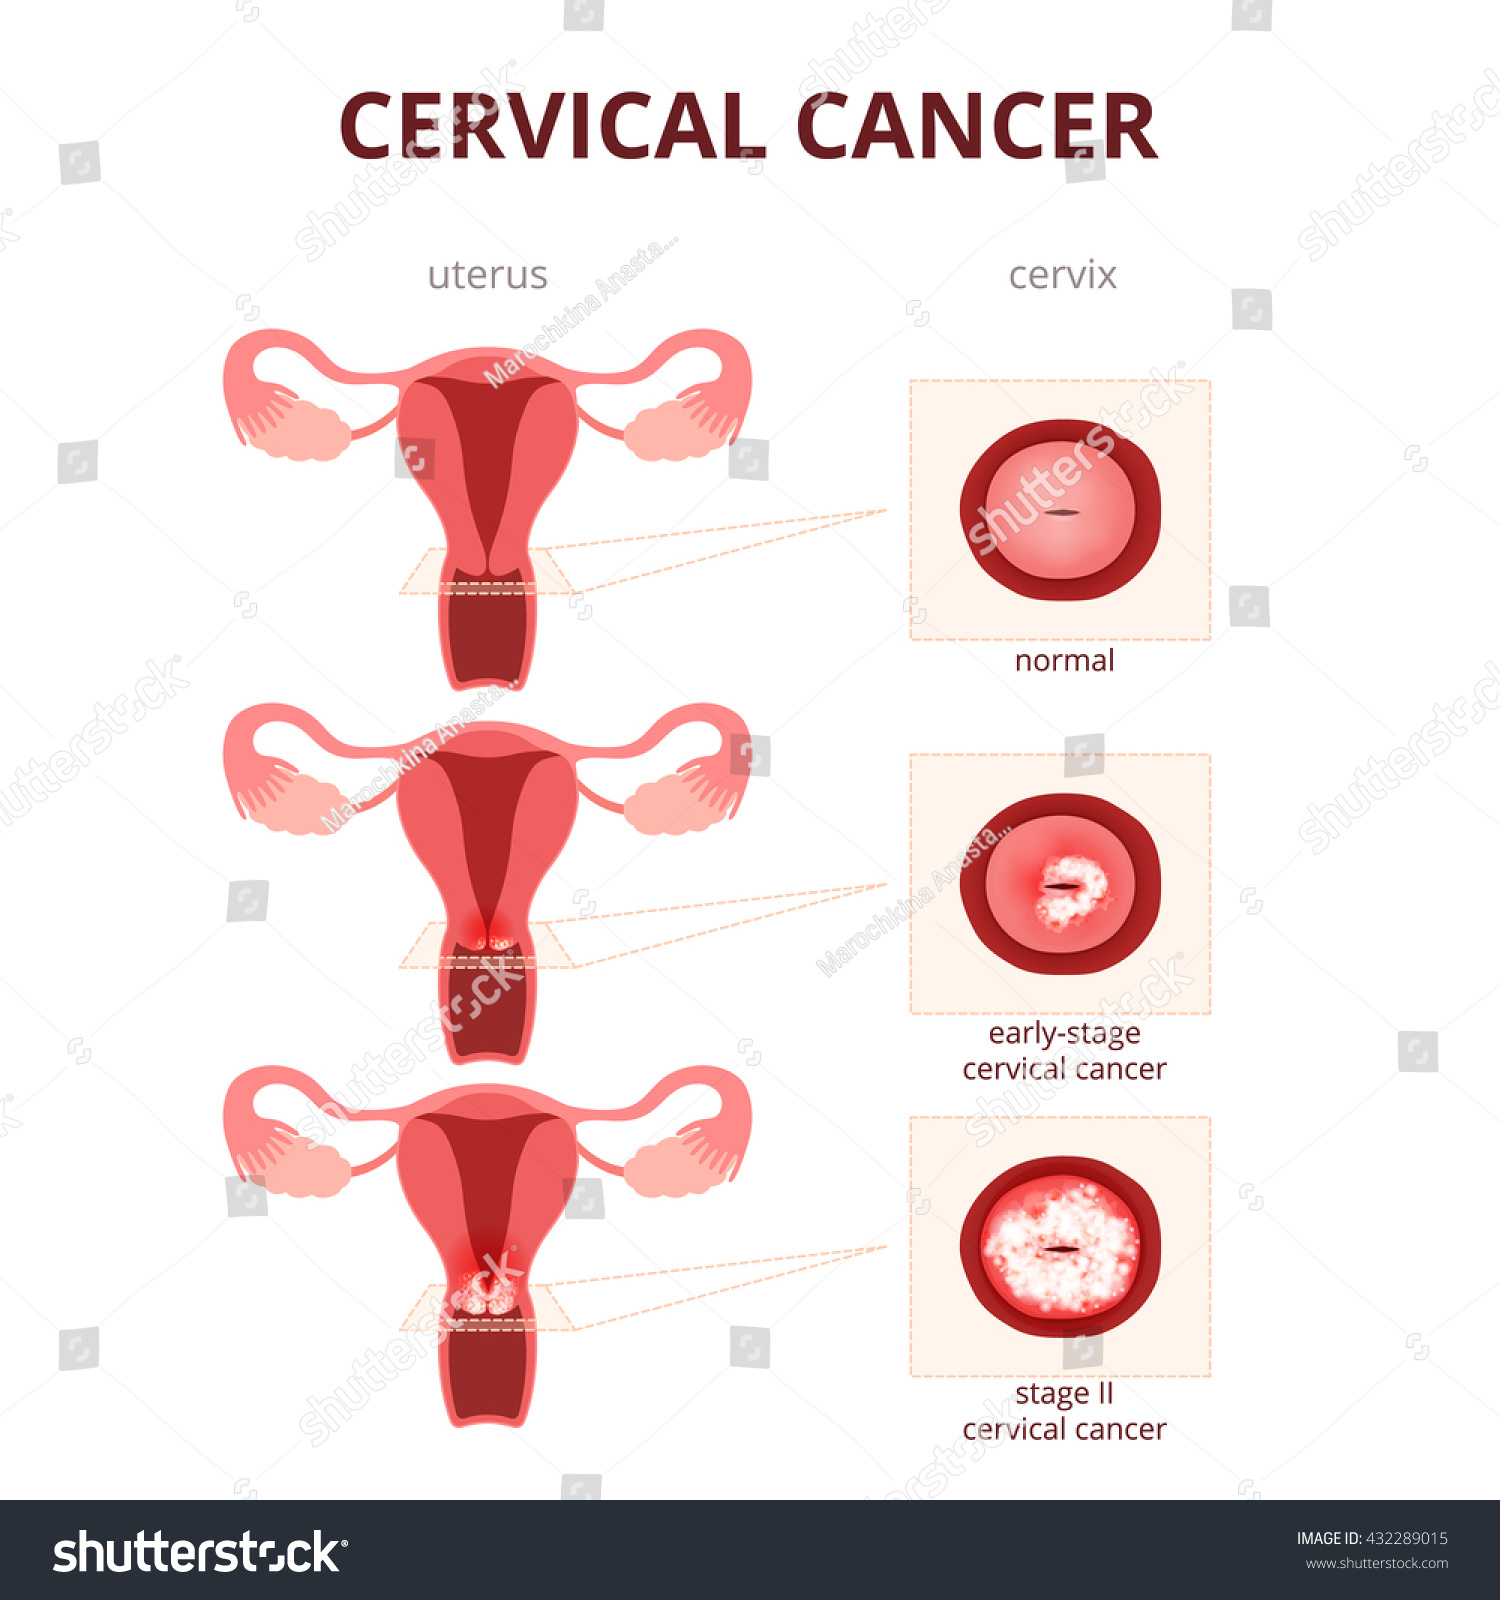 Cervical Cancer Schematic Illustration Uterus Cervix Stock